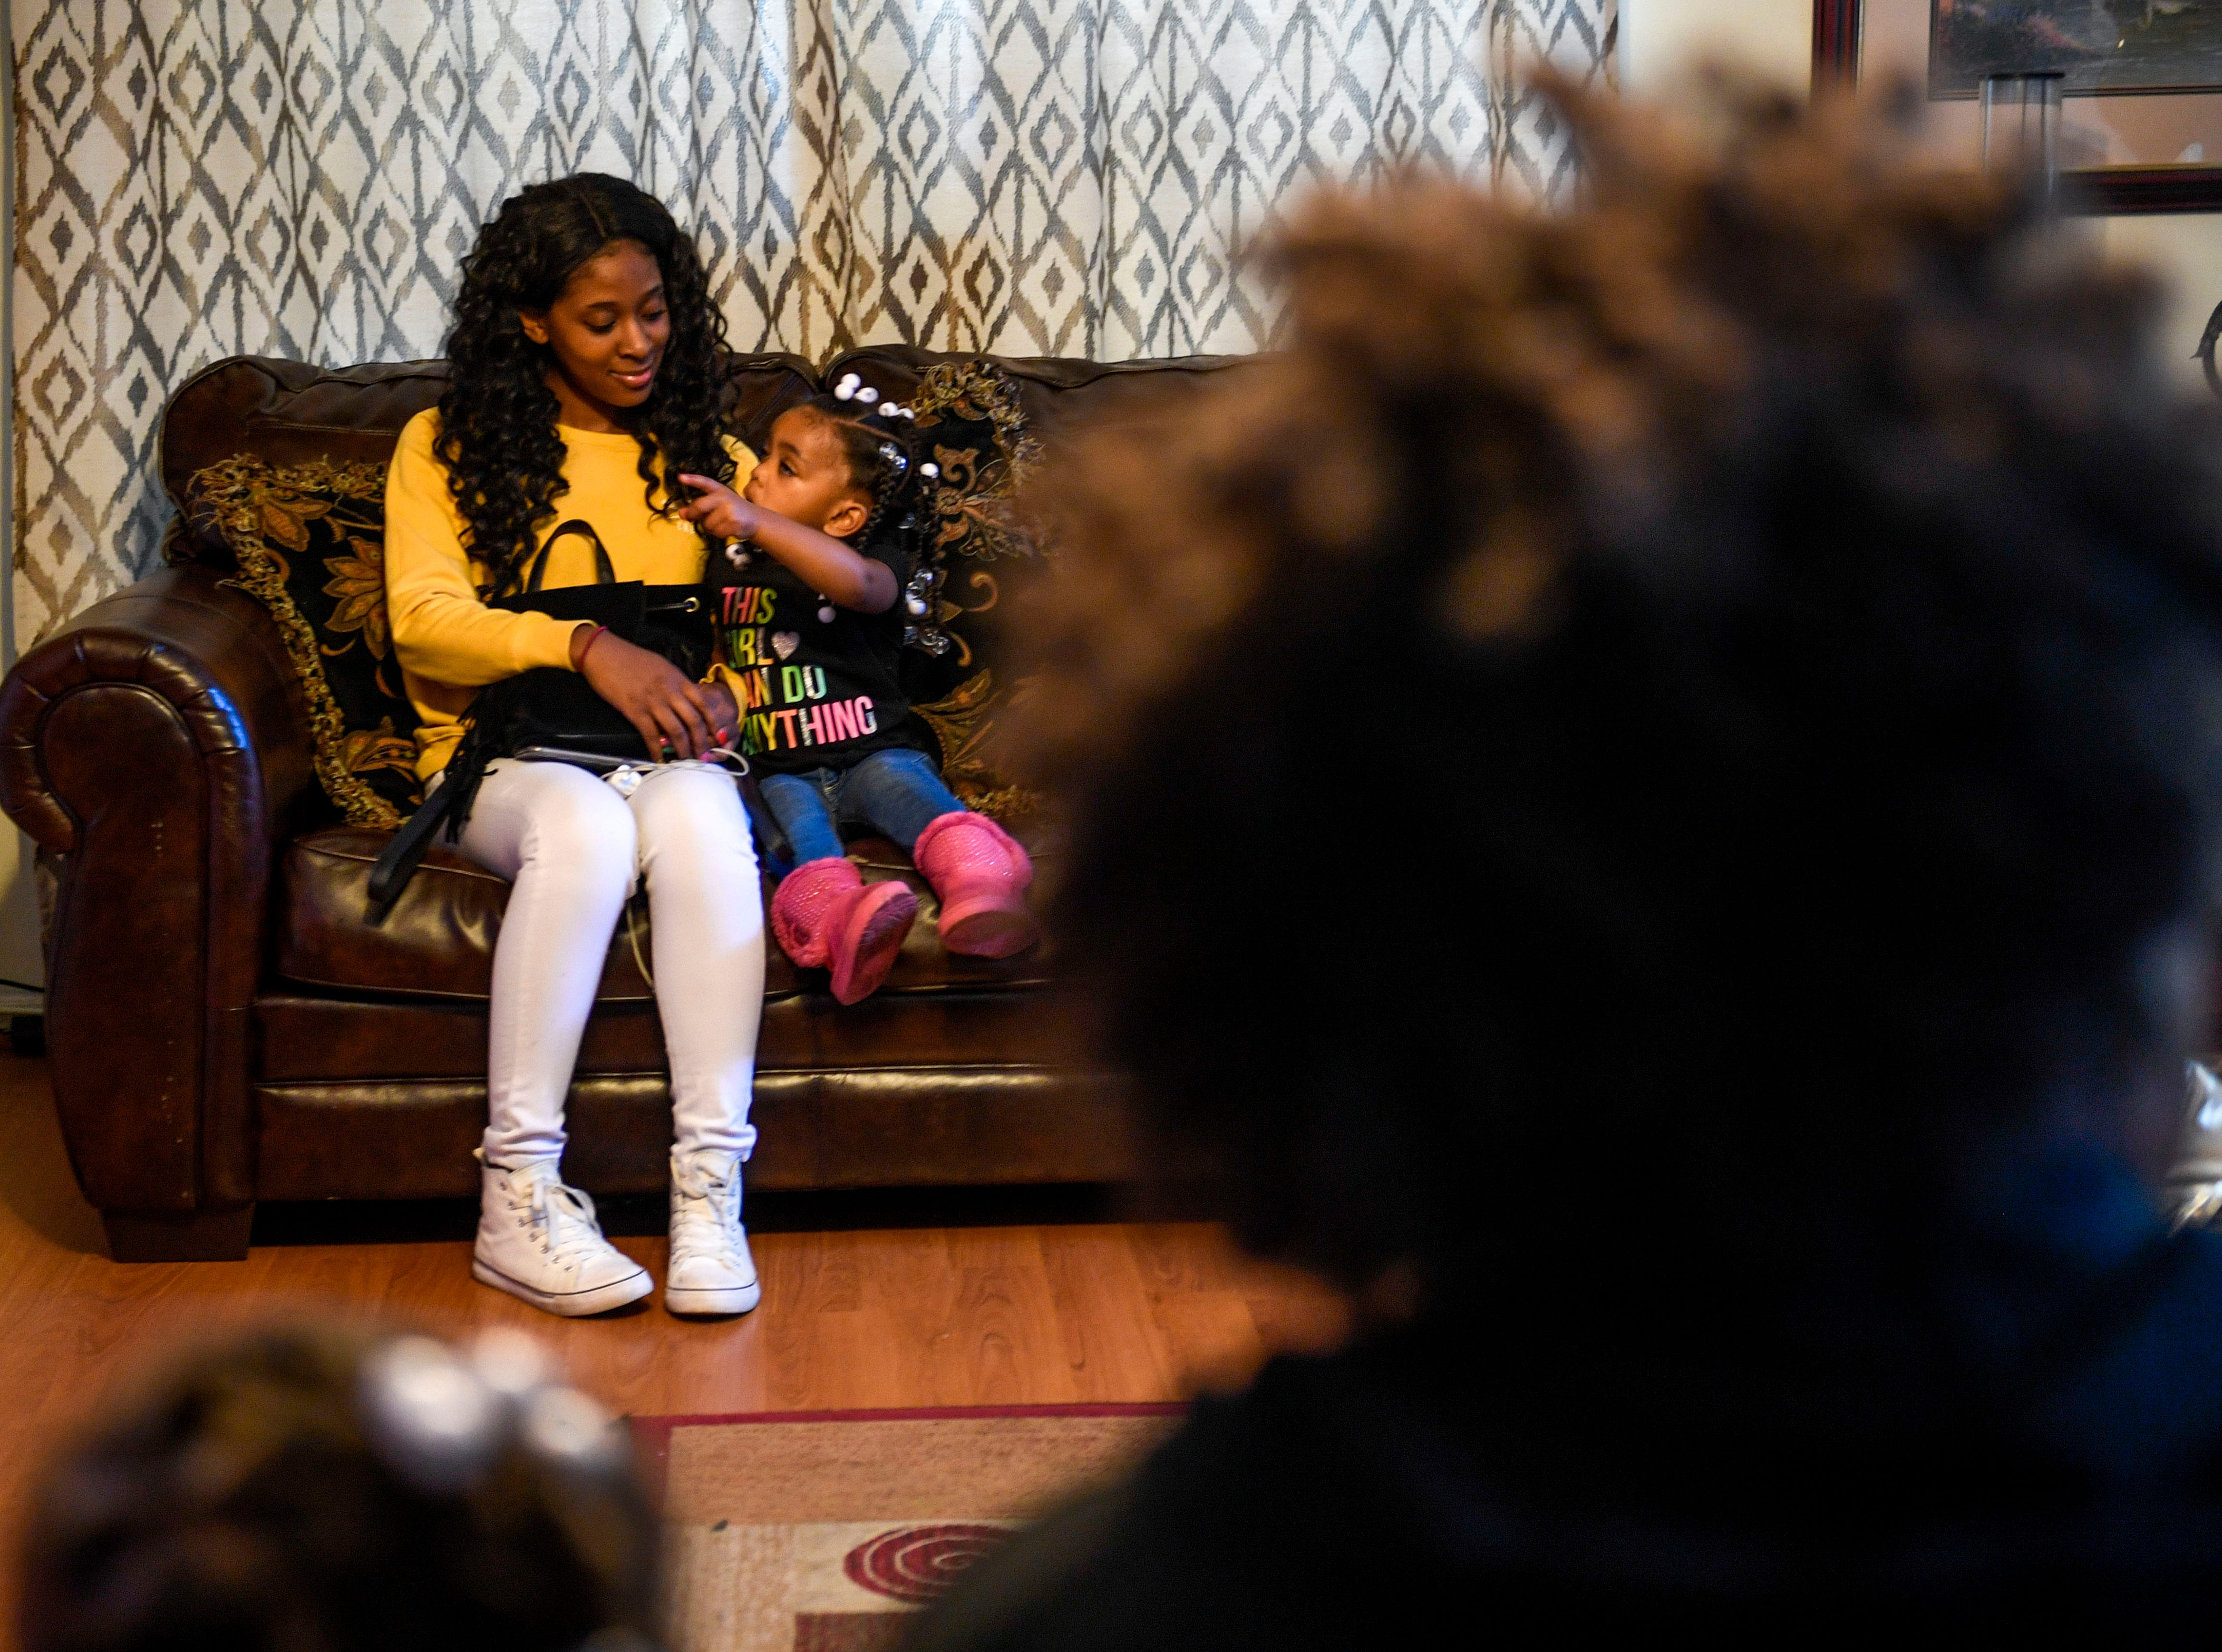 Peyton Howard, 2, points to the television screen while playing with Maya Kemp, both Tory Howard's nieces, at the home of Martha Epperson in Jackson, Tenn., on Wednesday, Nov. 7, 2018.